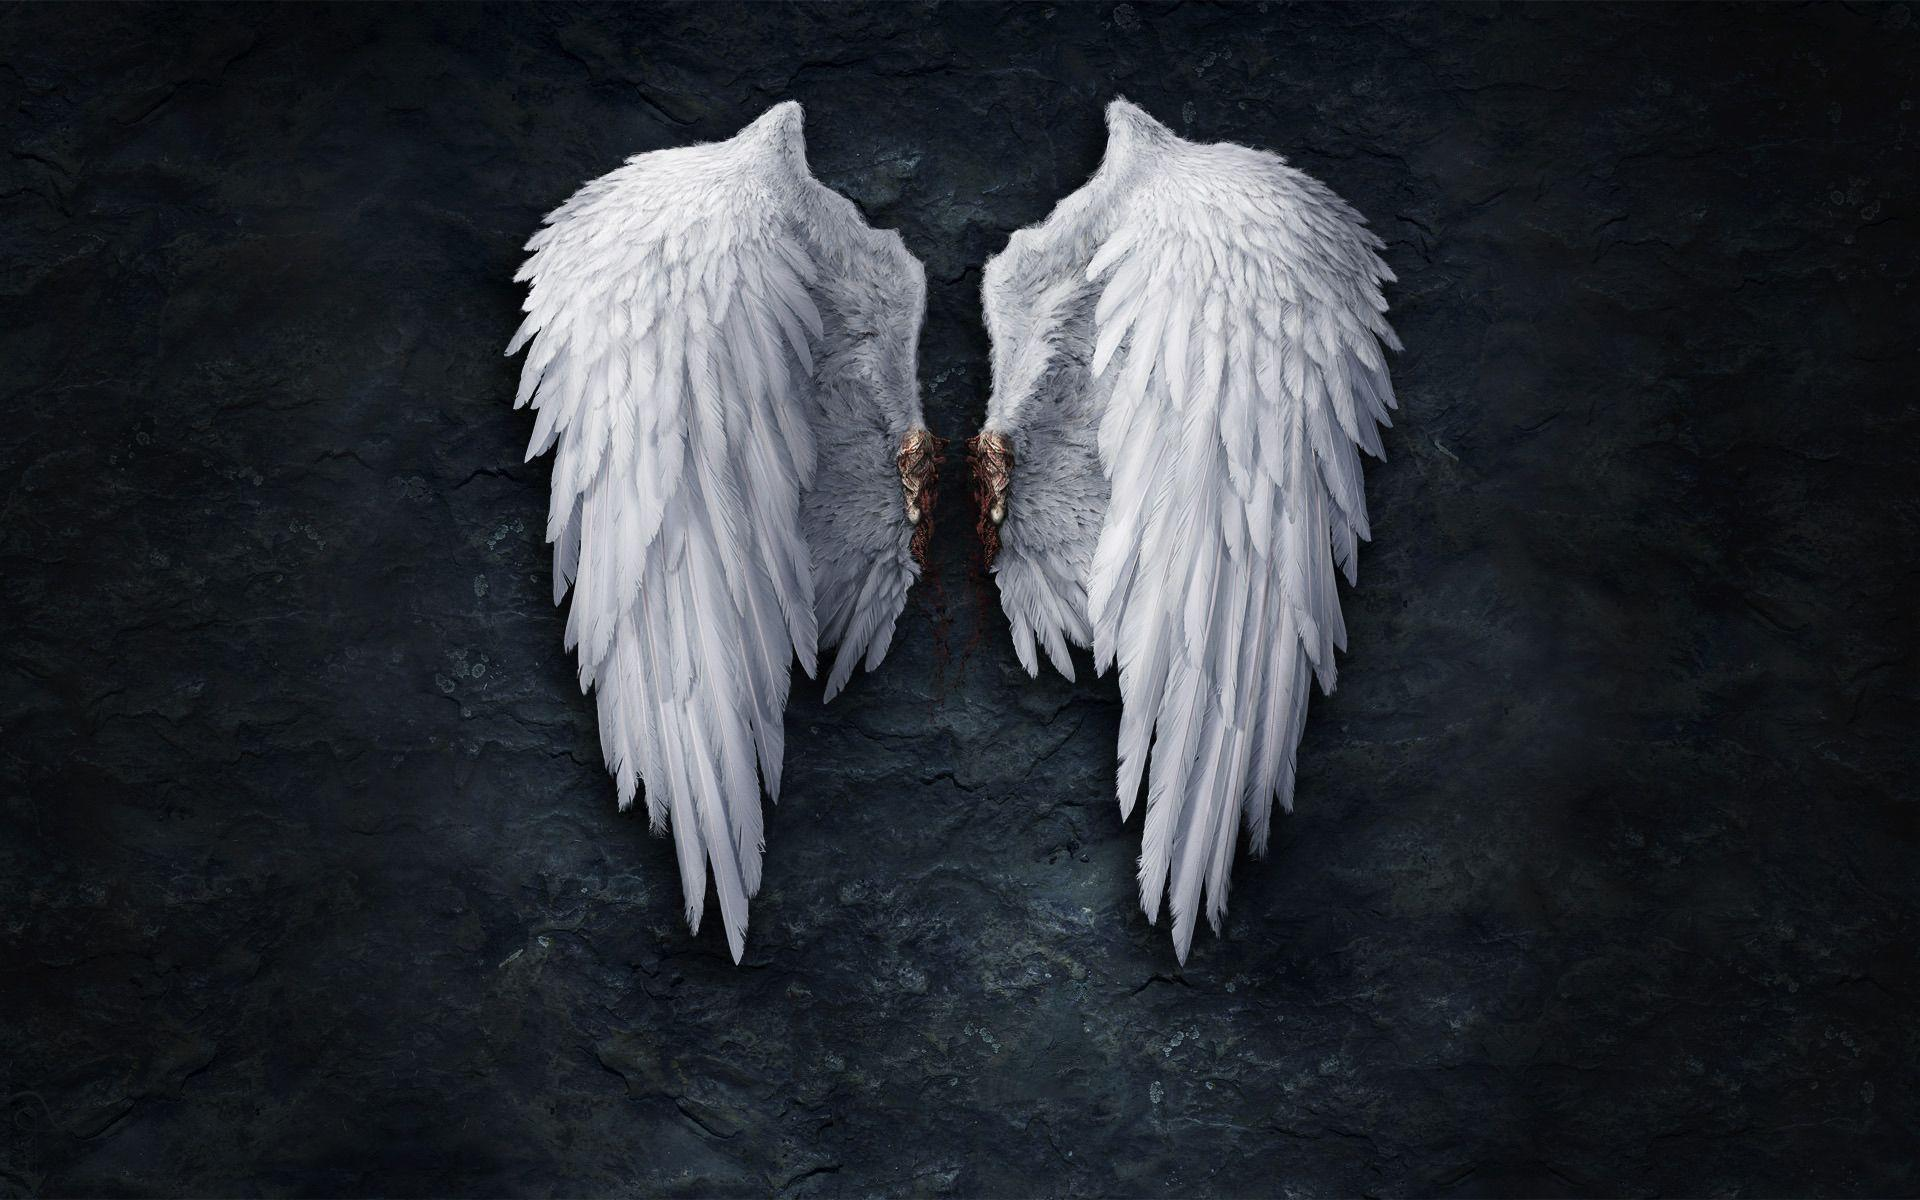 angel wings black background - photo #20